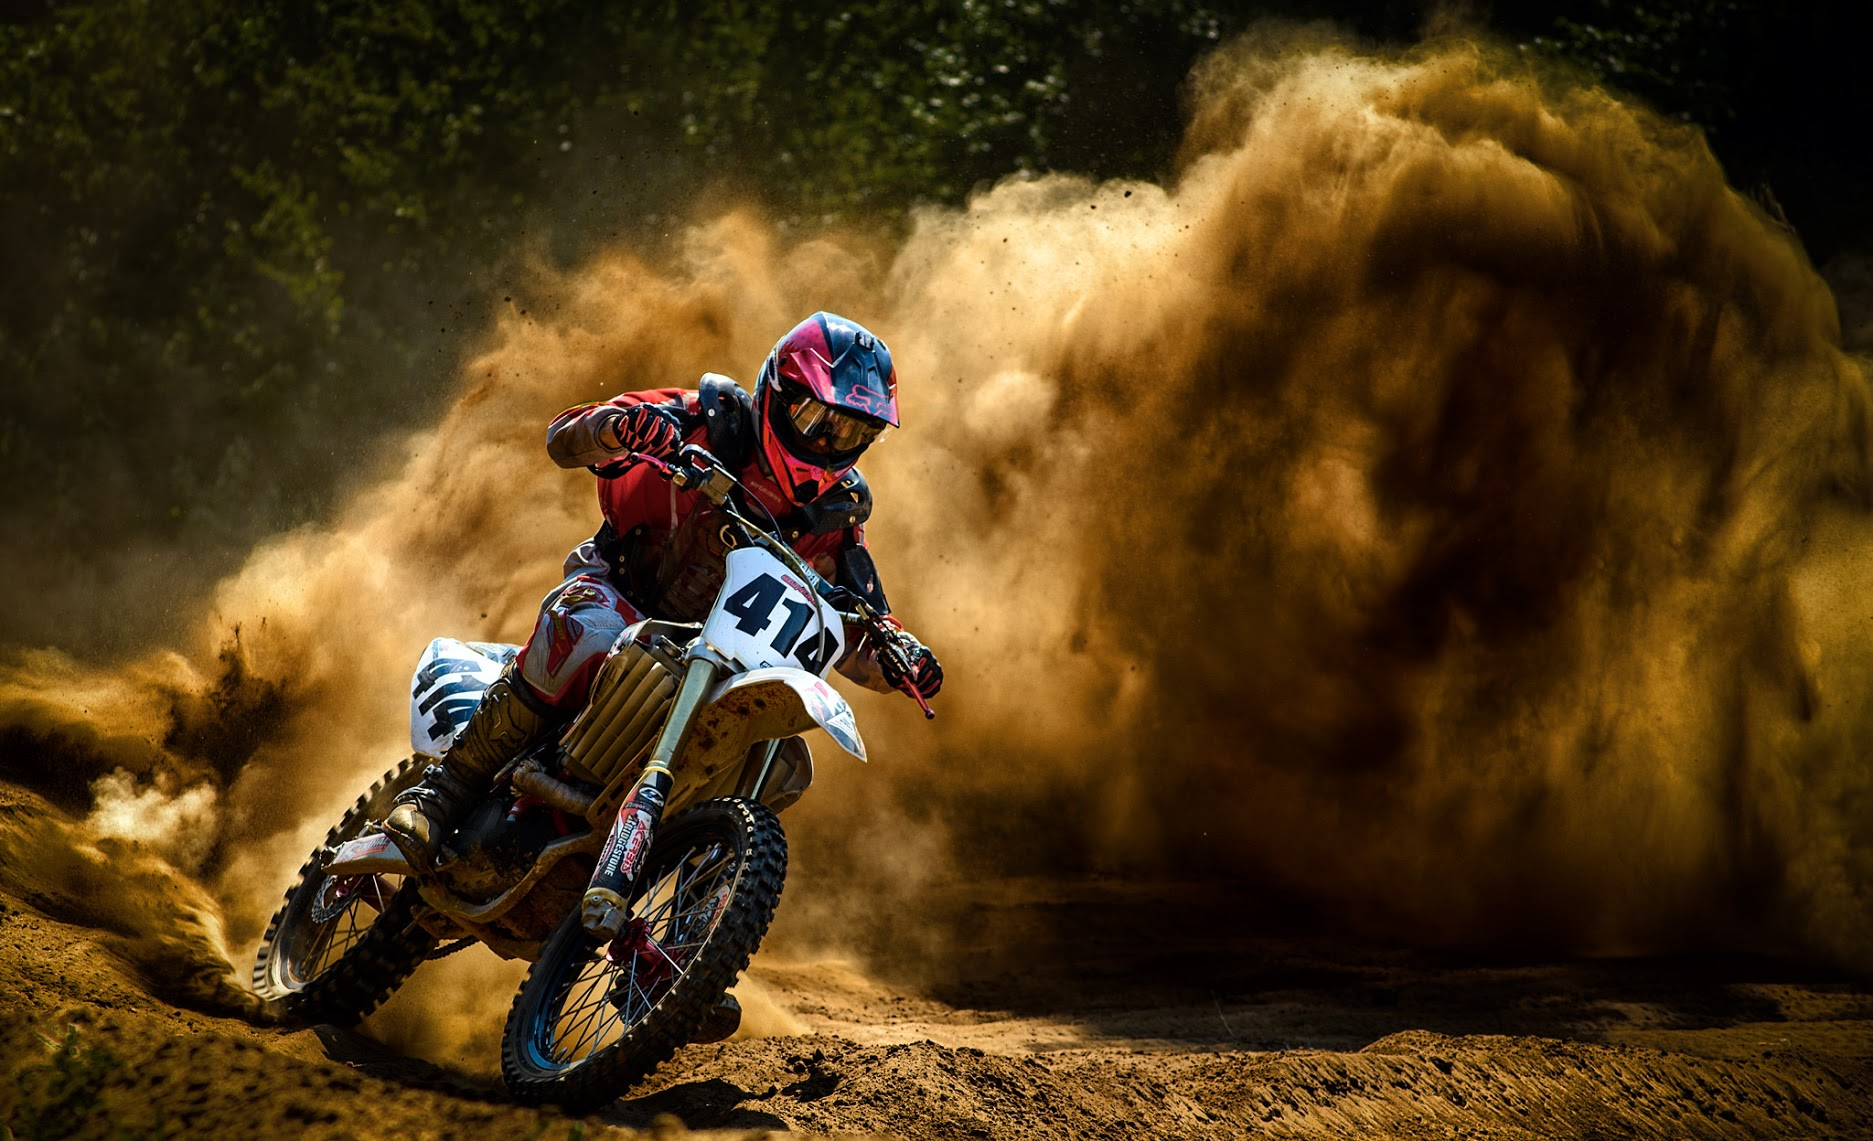 Wallpaper Motocross Ktm Posted By Zoey Tremblay